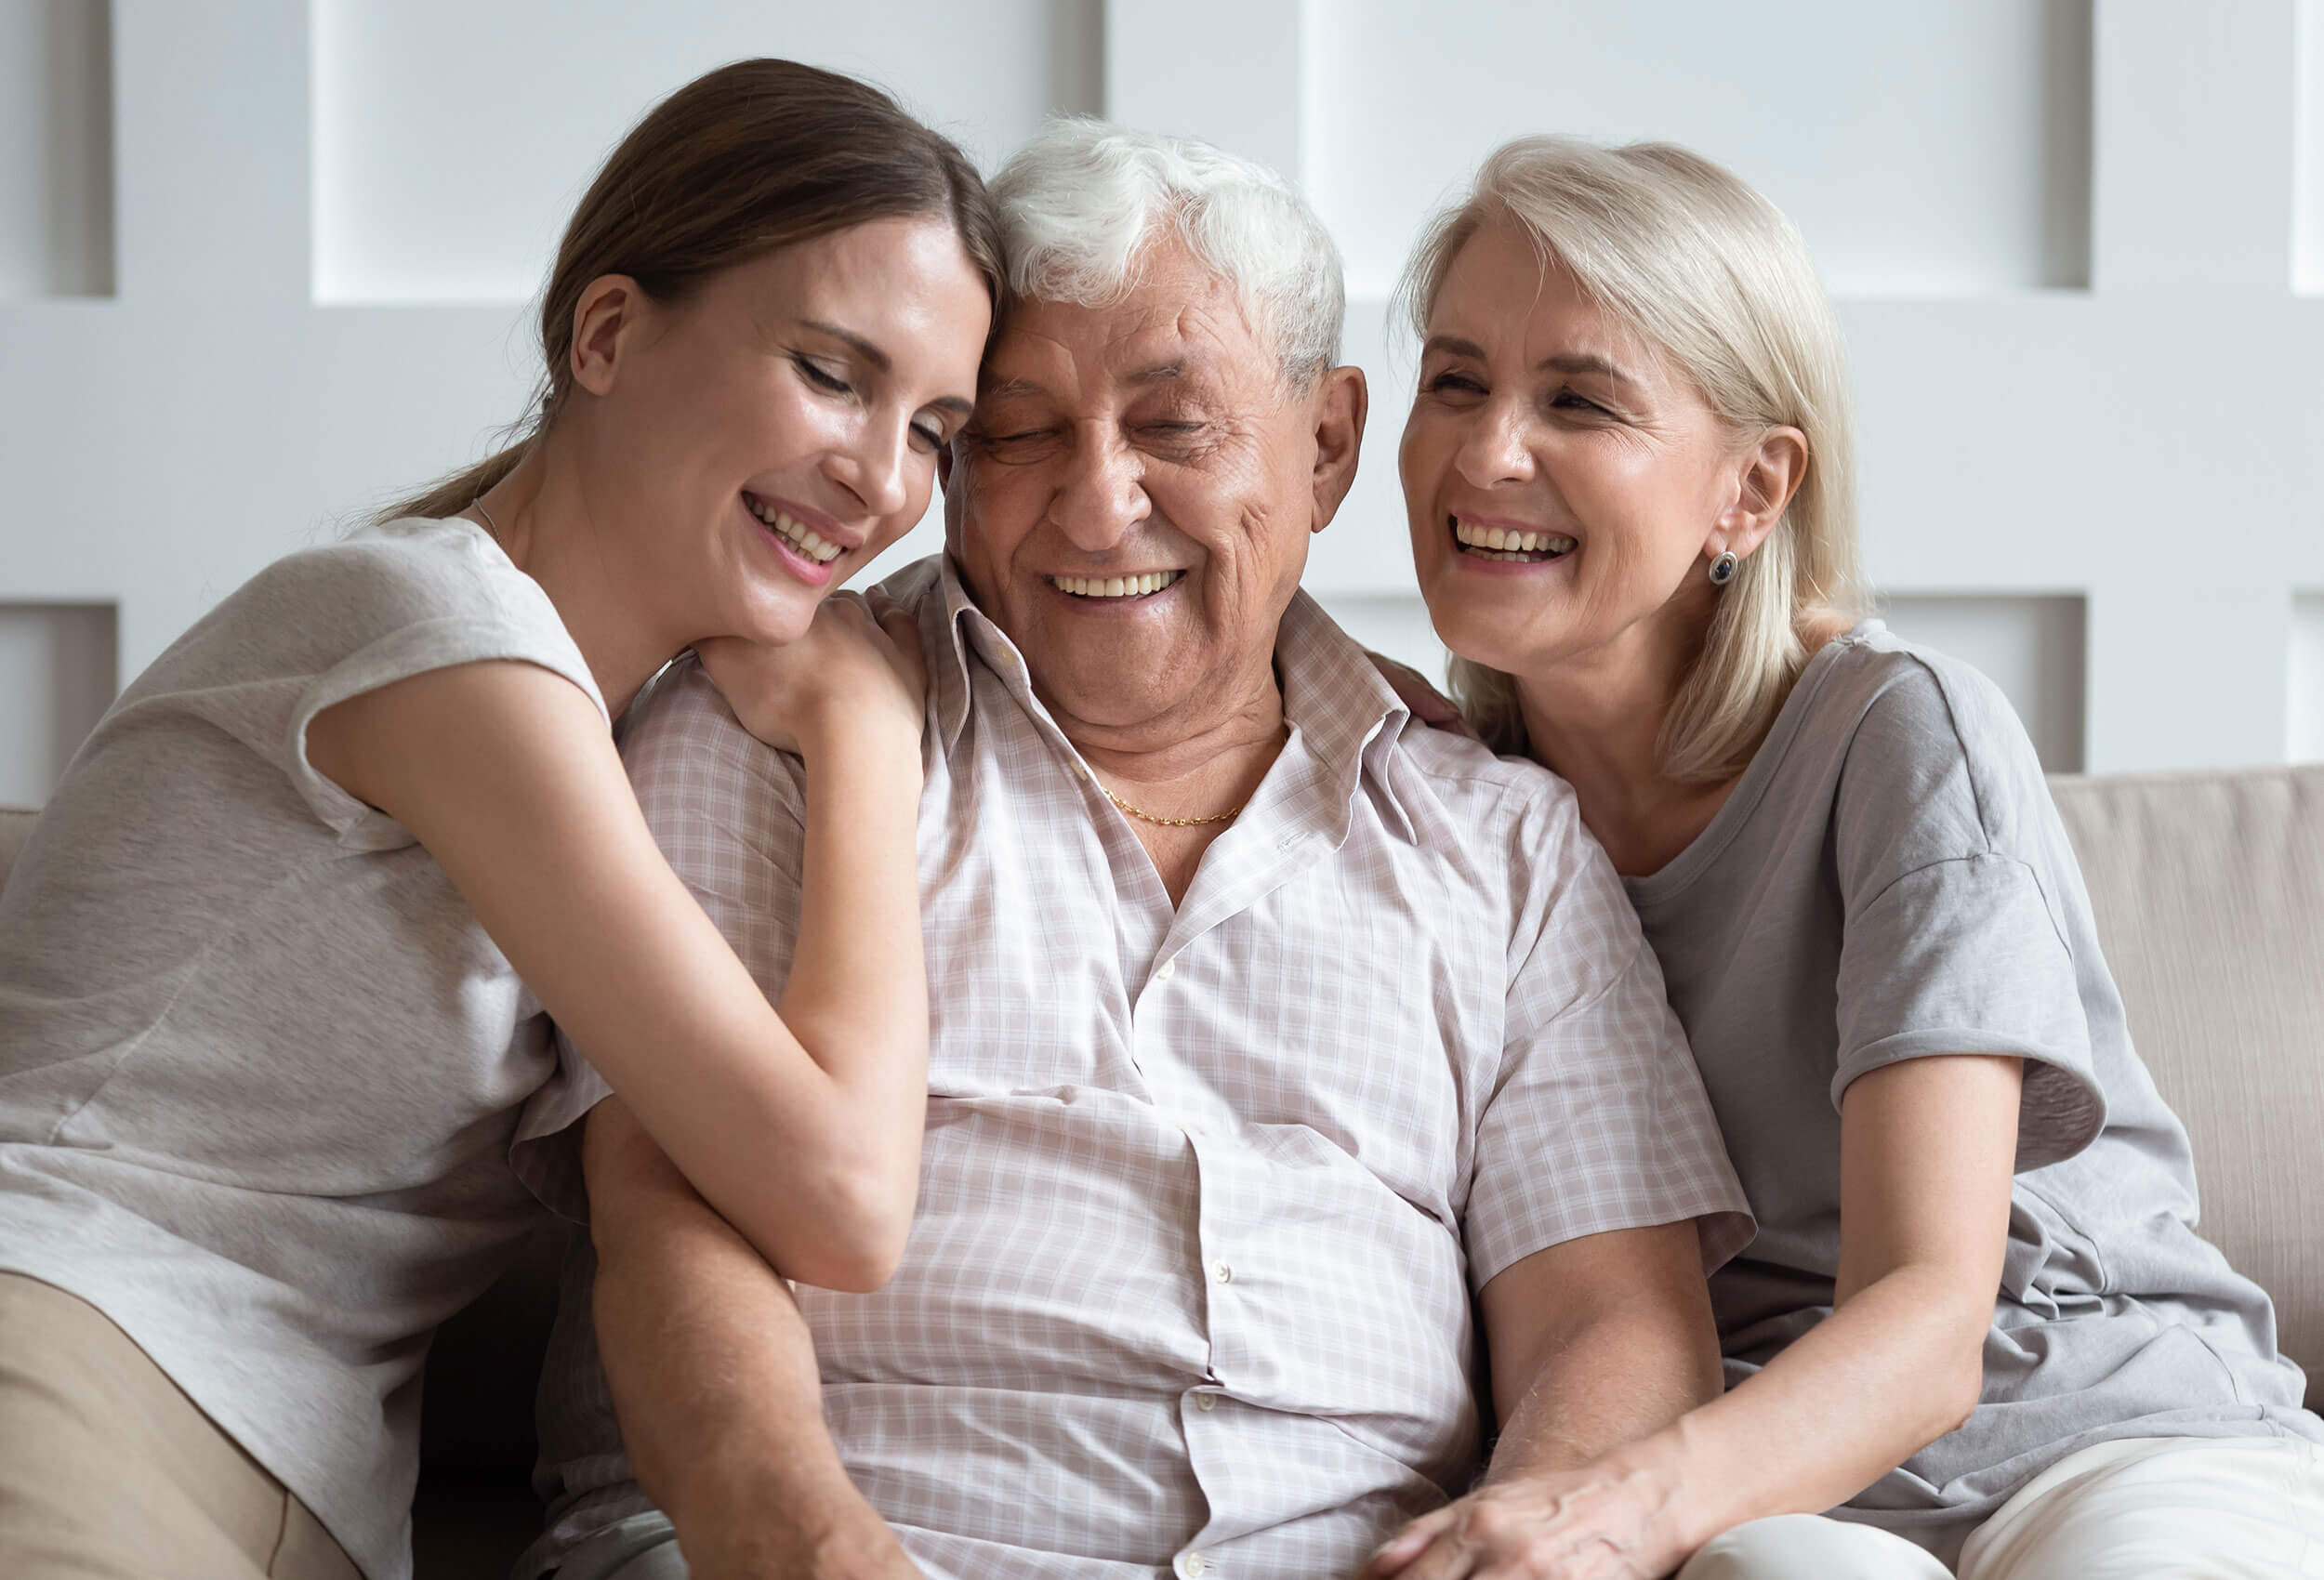 Two women and an elderly man smiling